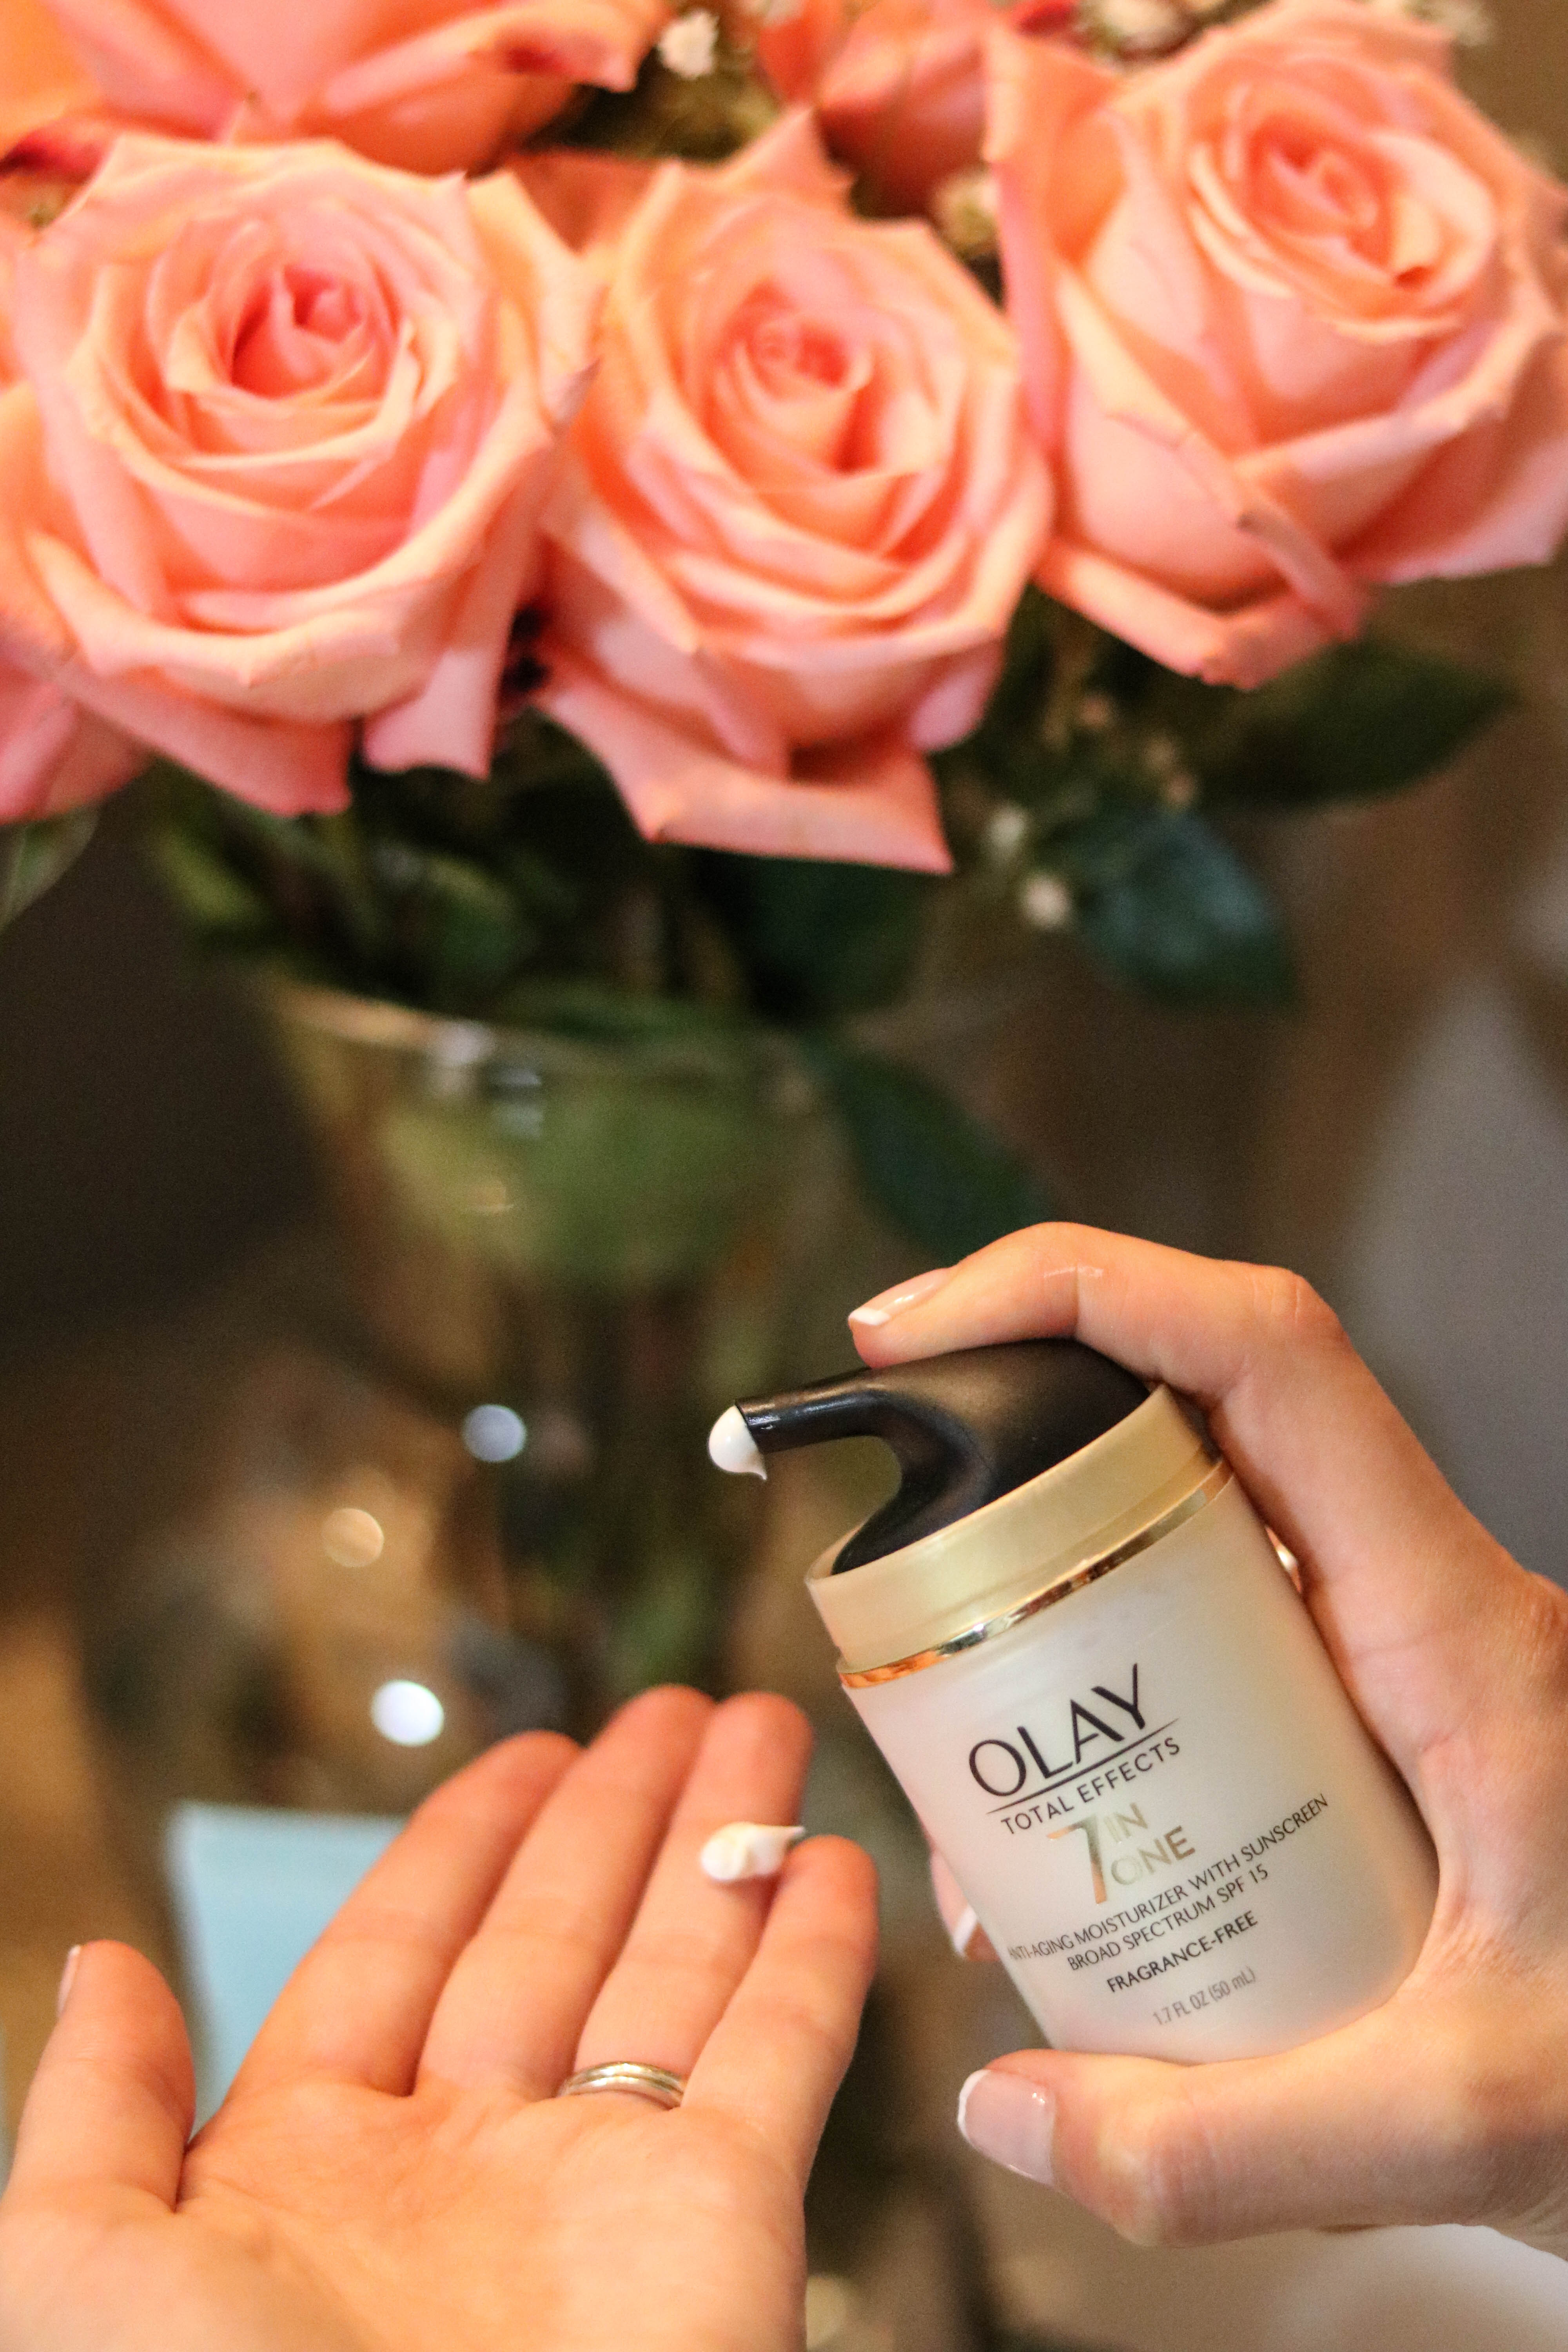 Glow, Baby, Glow! Sharing my Glow-Ready Pregnancy Skincare Routine with Olay after 28 day effects of a consistent morning + nighttime pregnancy skincare routine.